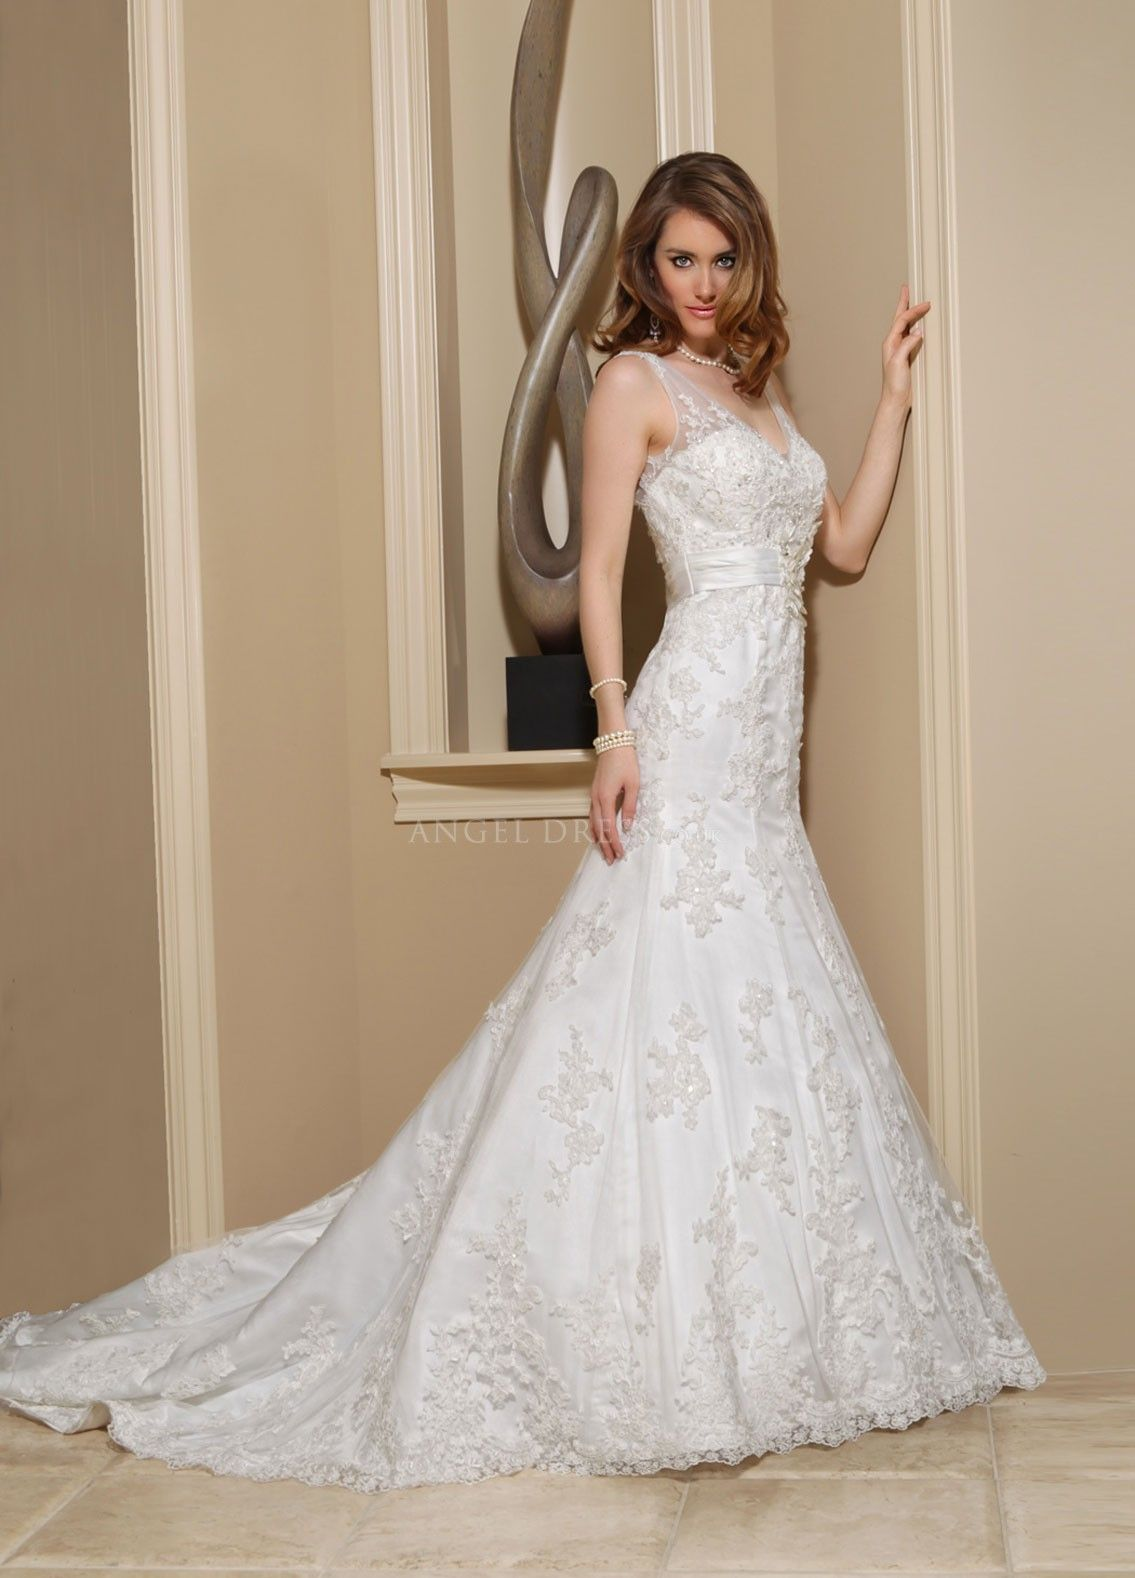 V Neck Fit N Flare Floor Length With Sash/ Ribbon Tulle & Lace Elegant Bridal Gown